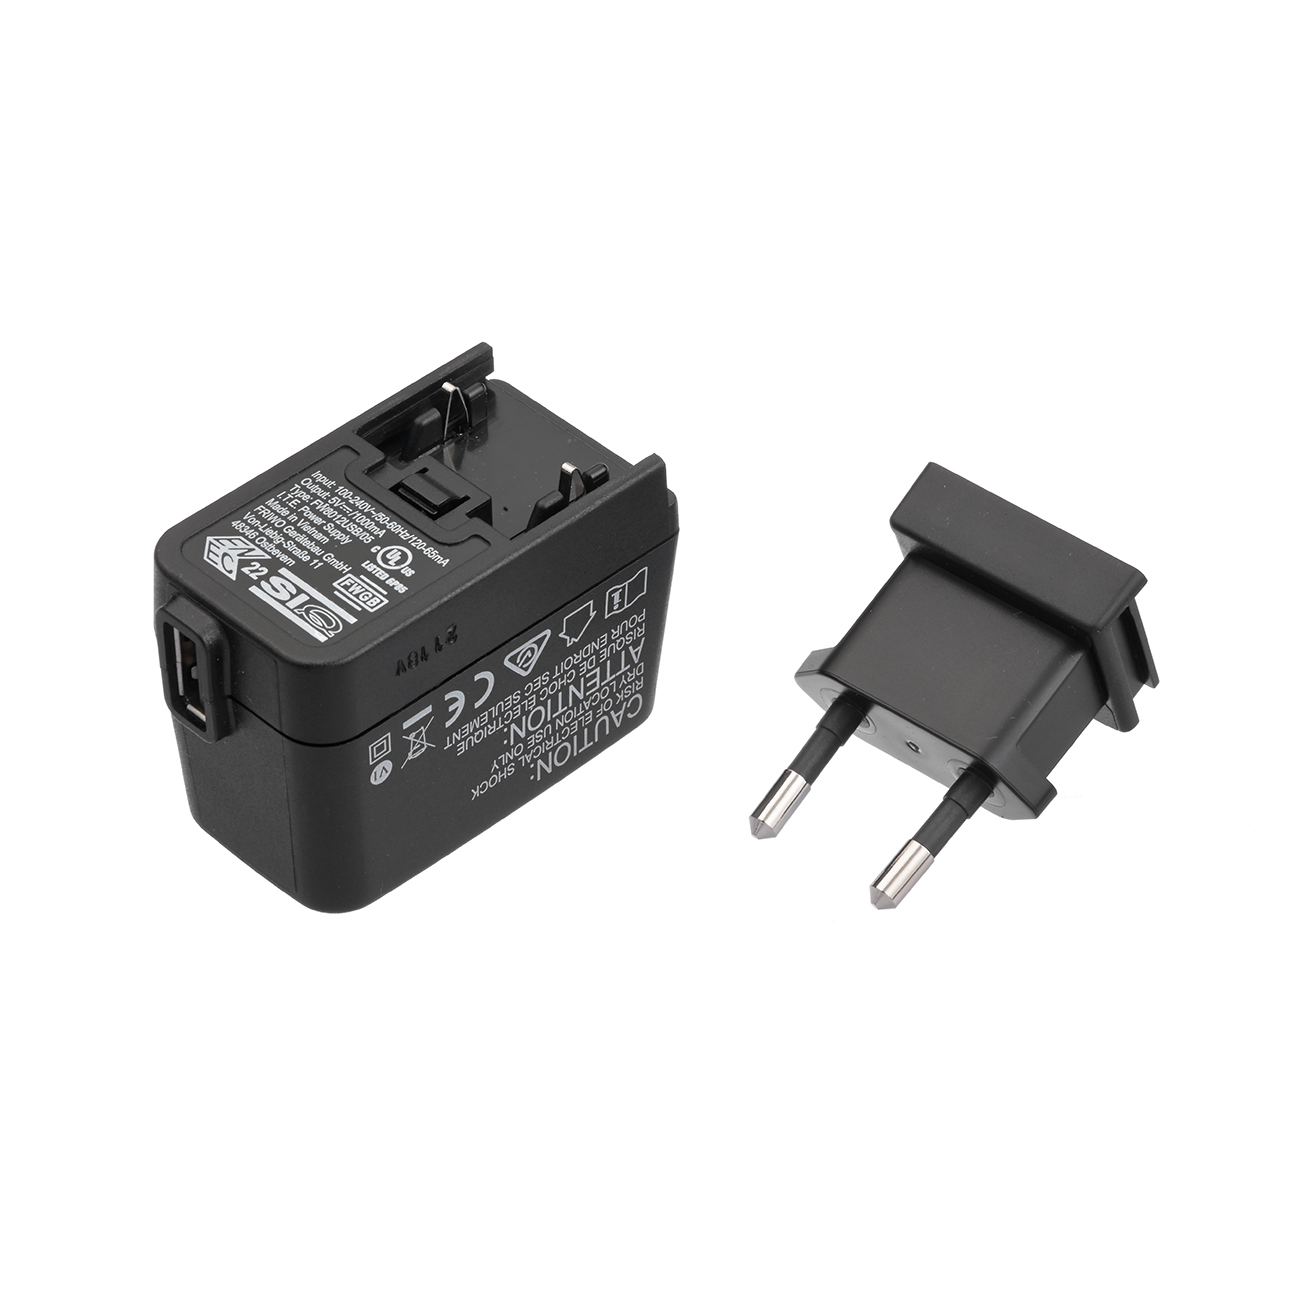 Power supply NT 5-10 UW EU